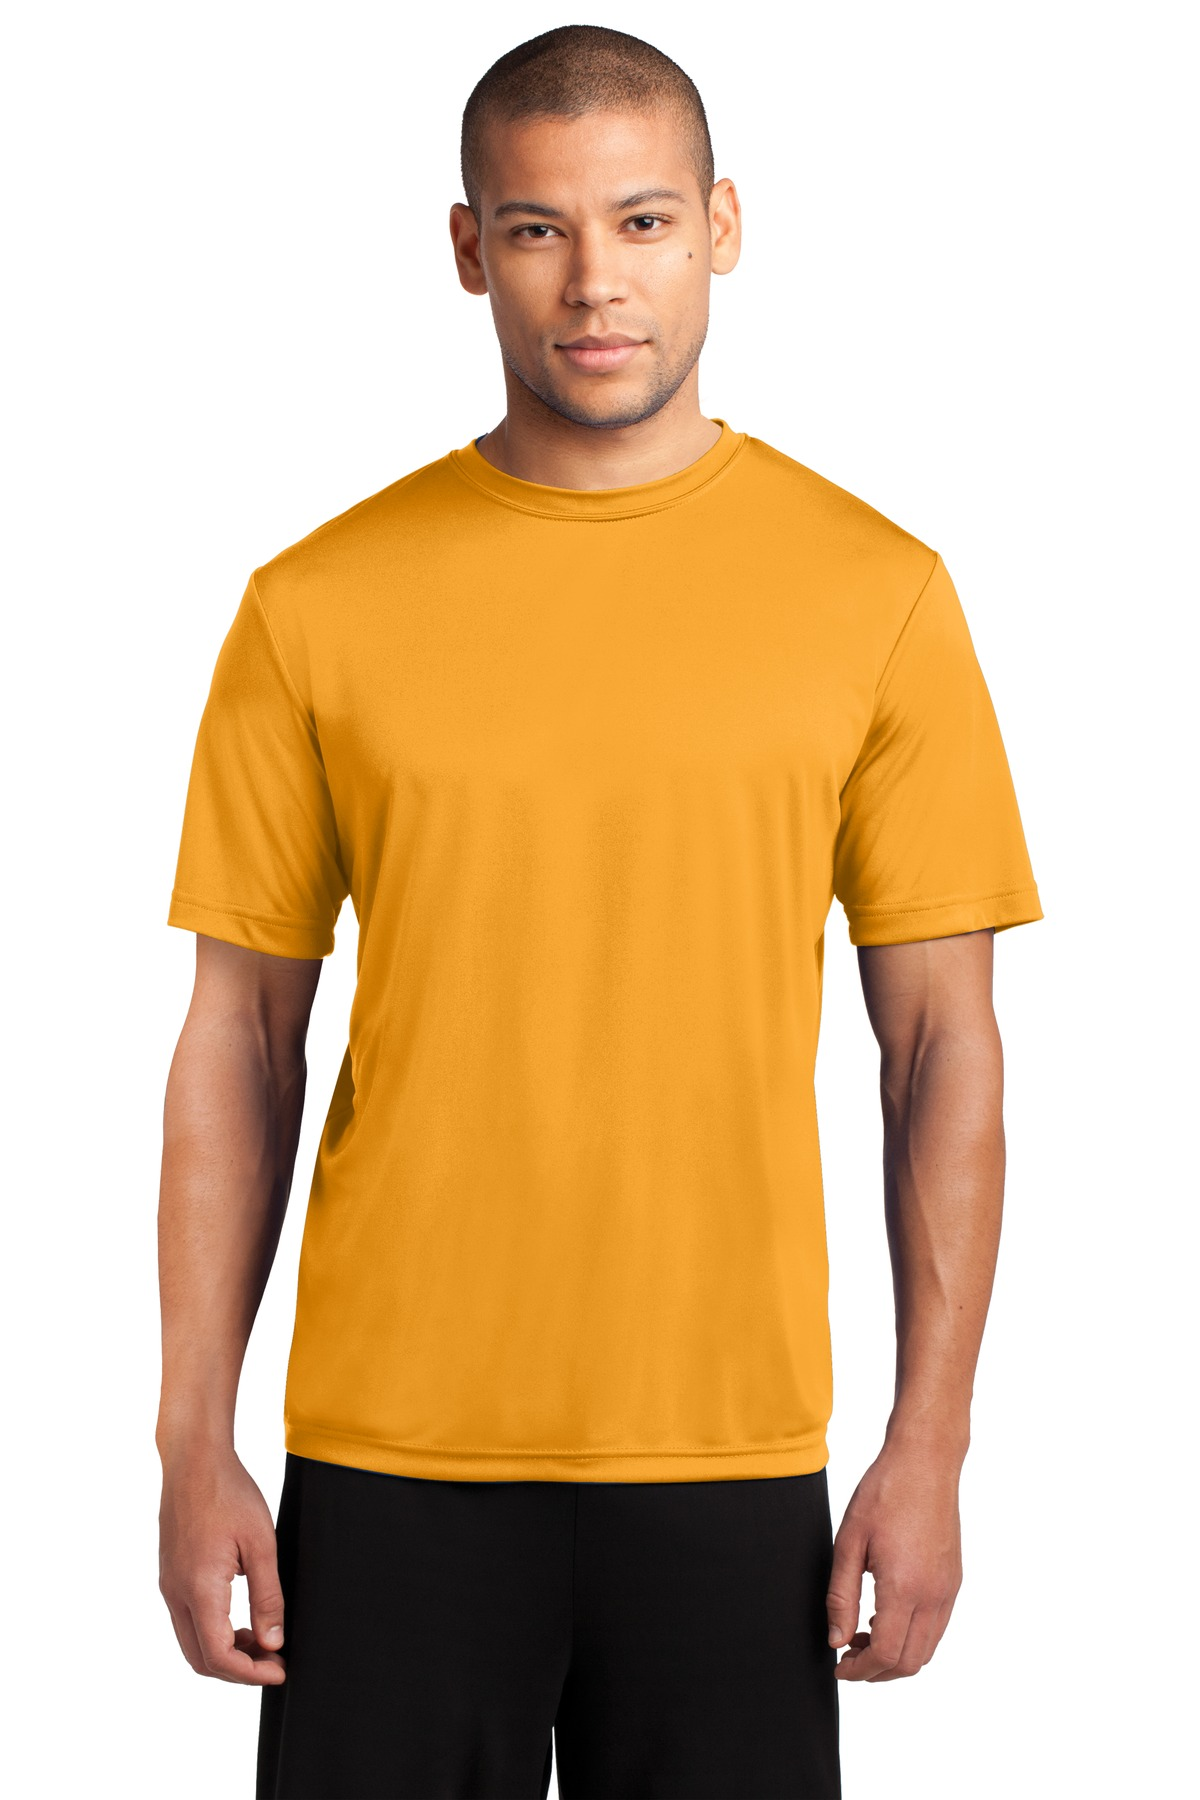 PC380 Smart Performance T-Shirt - Jet Black - 4X-Large